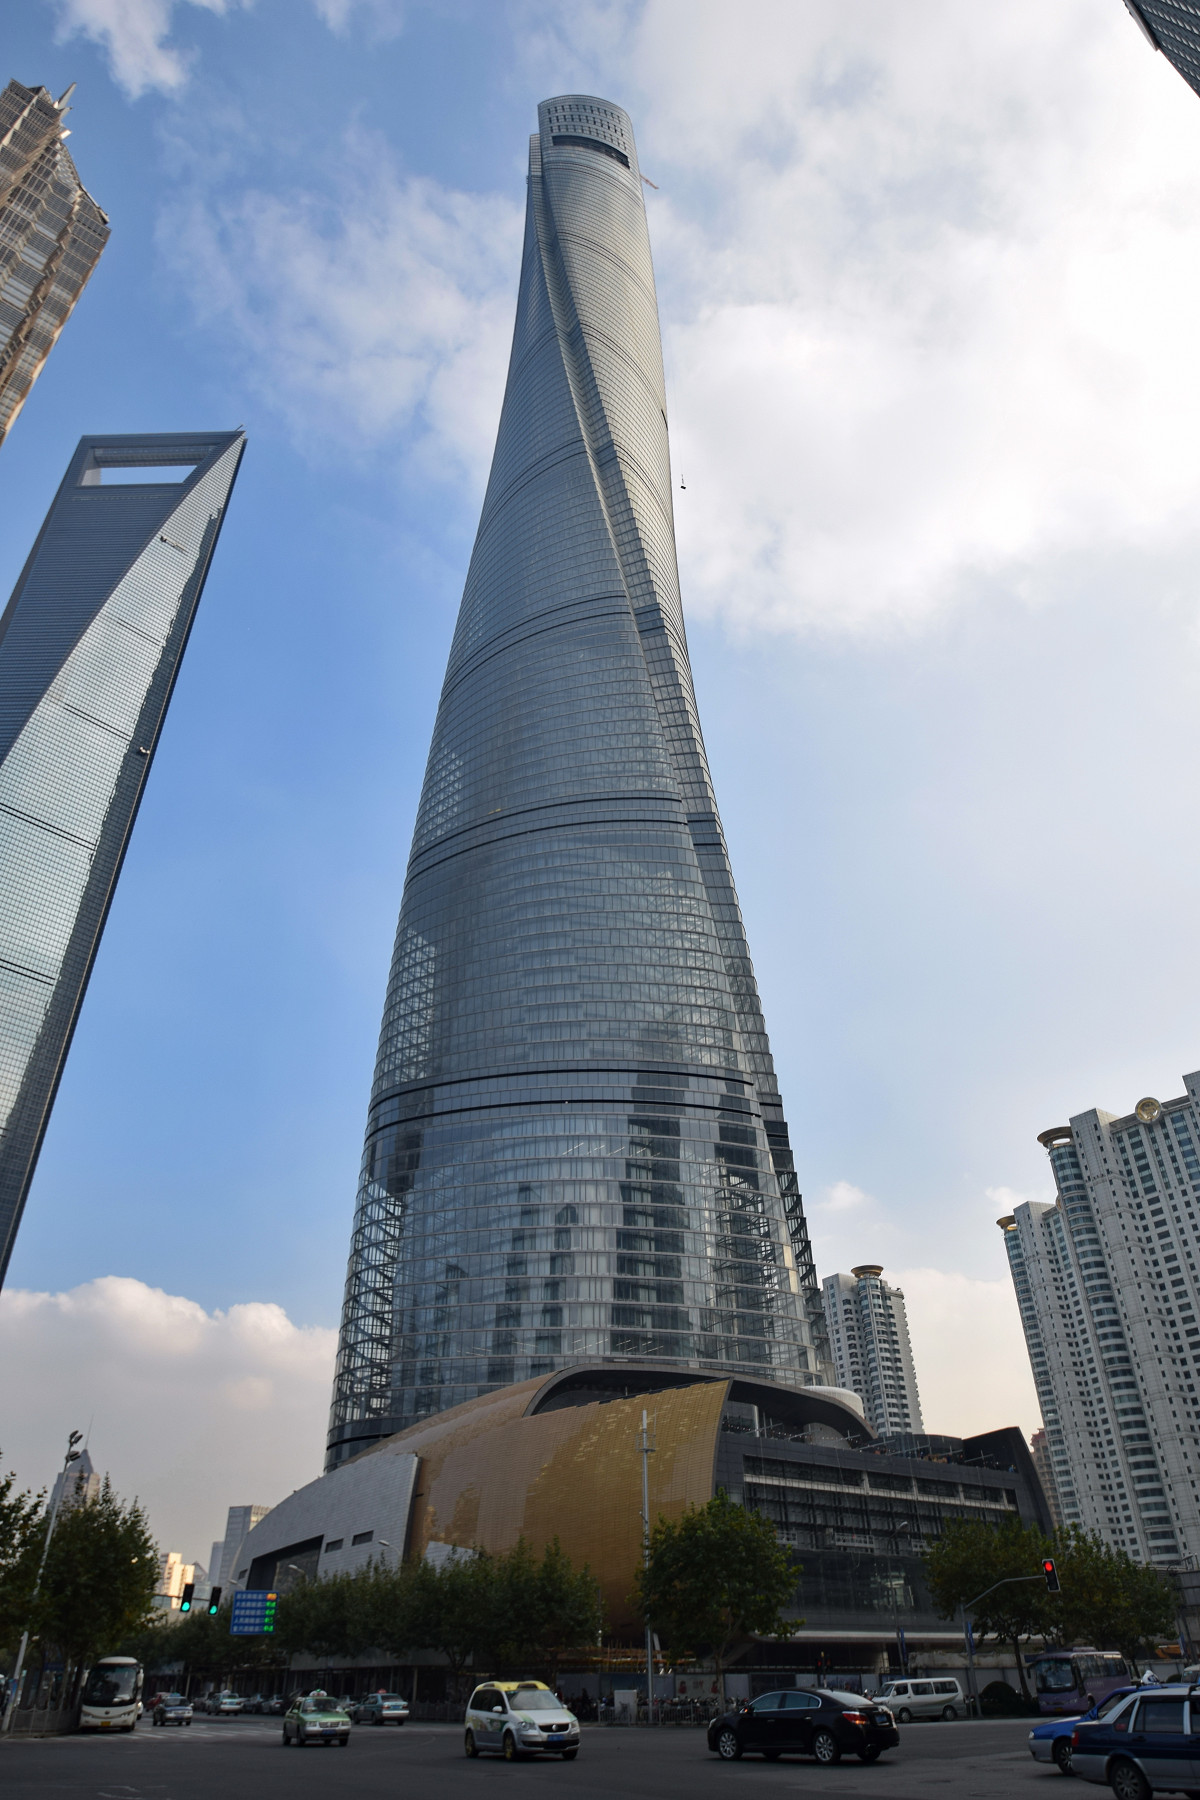 Shanghai Tower - Wikip...